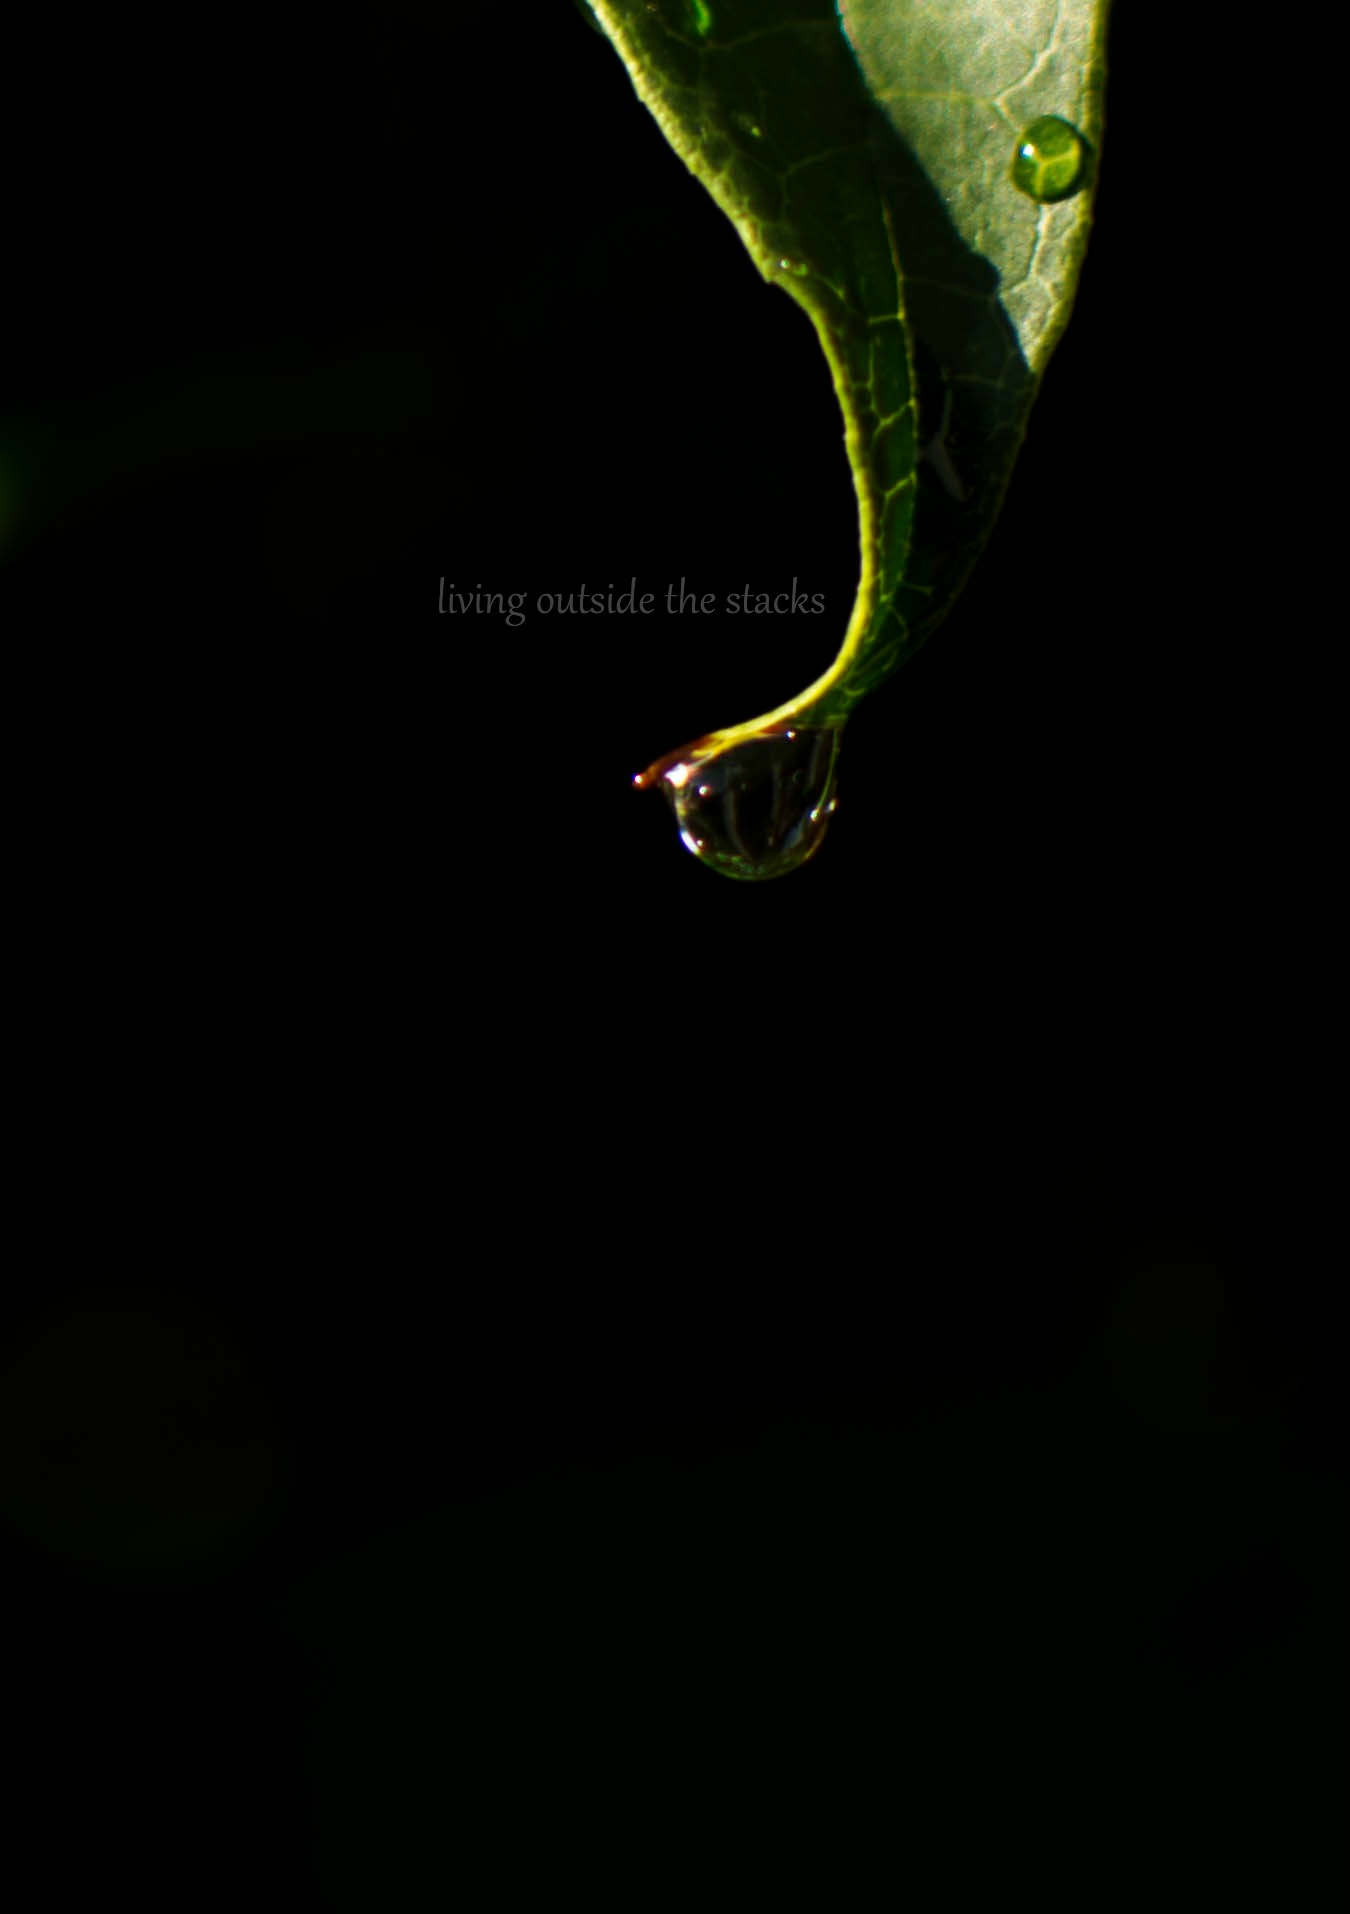 Leaf with Water Droplet {living outside the stacks}